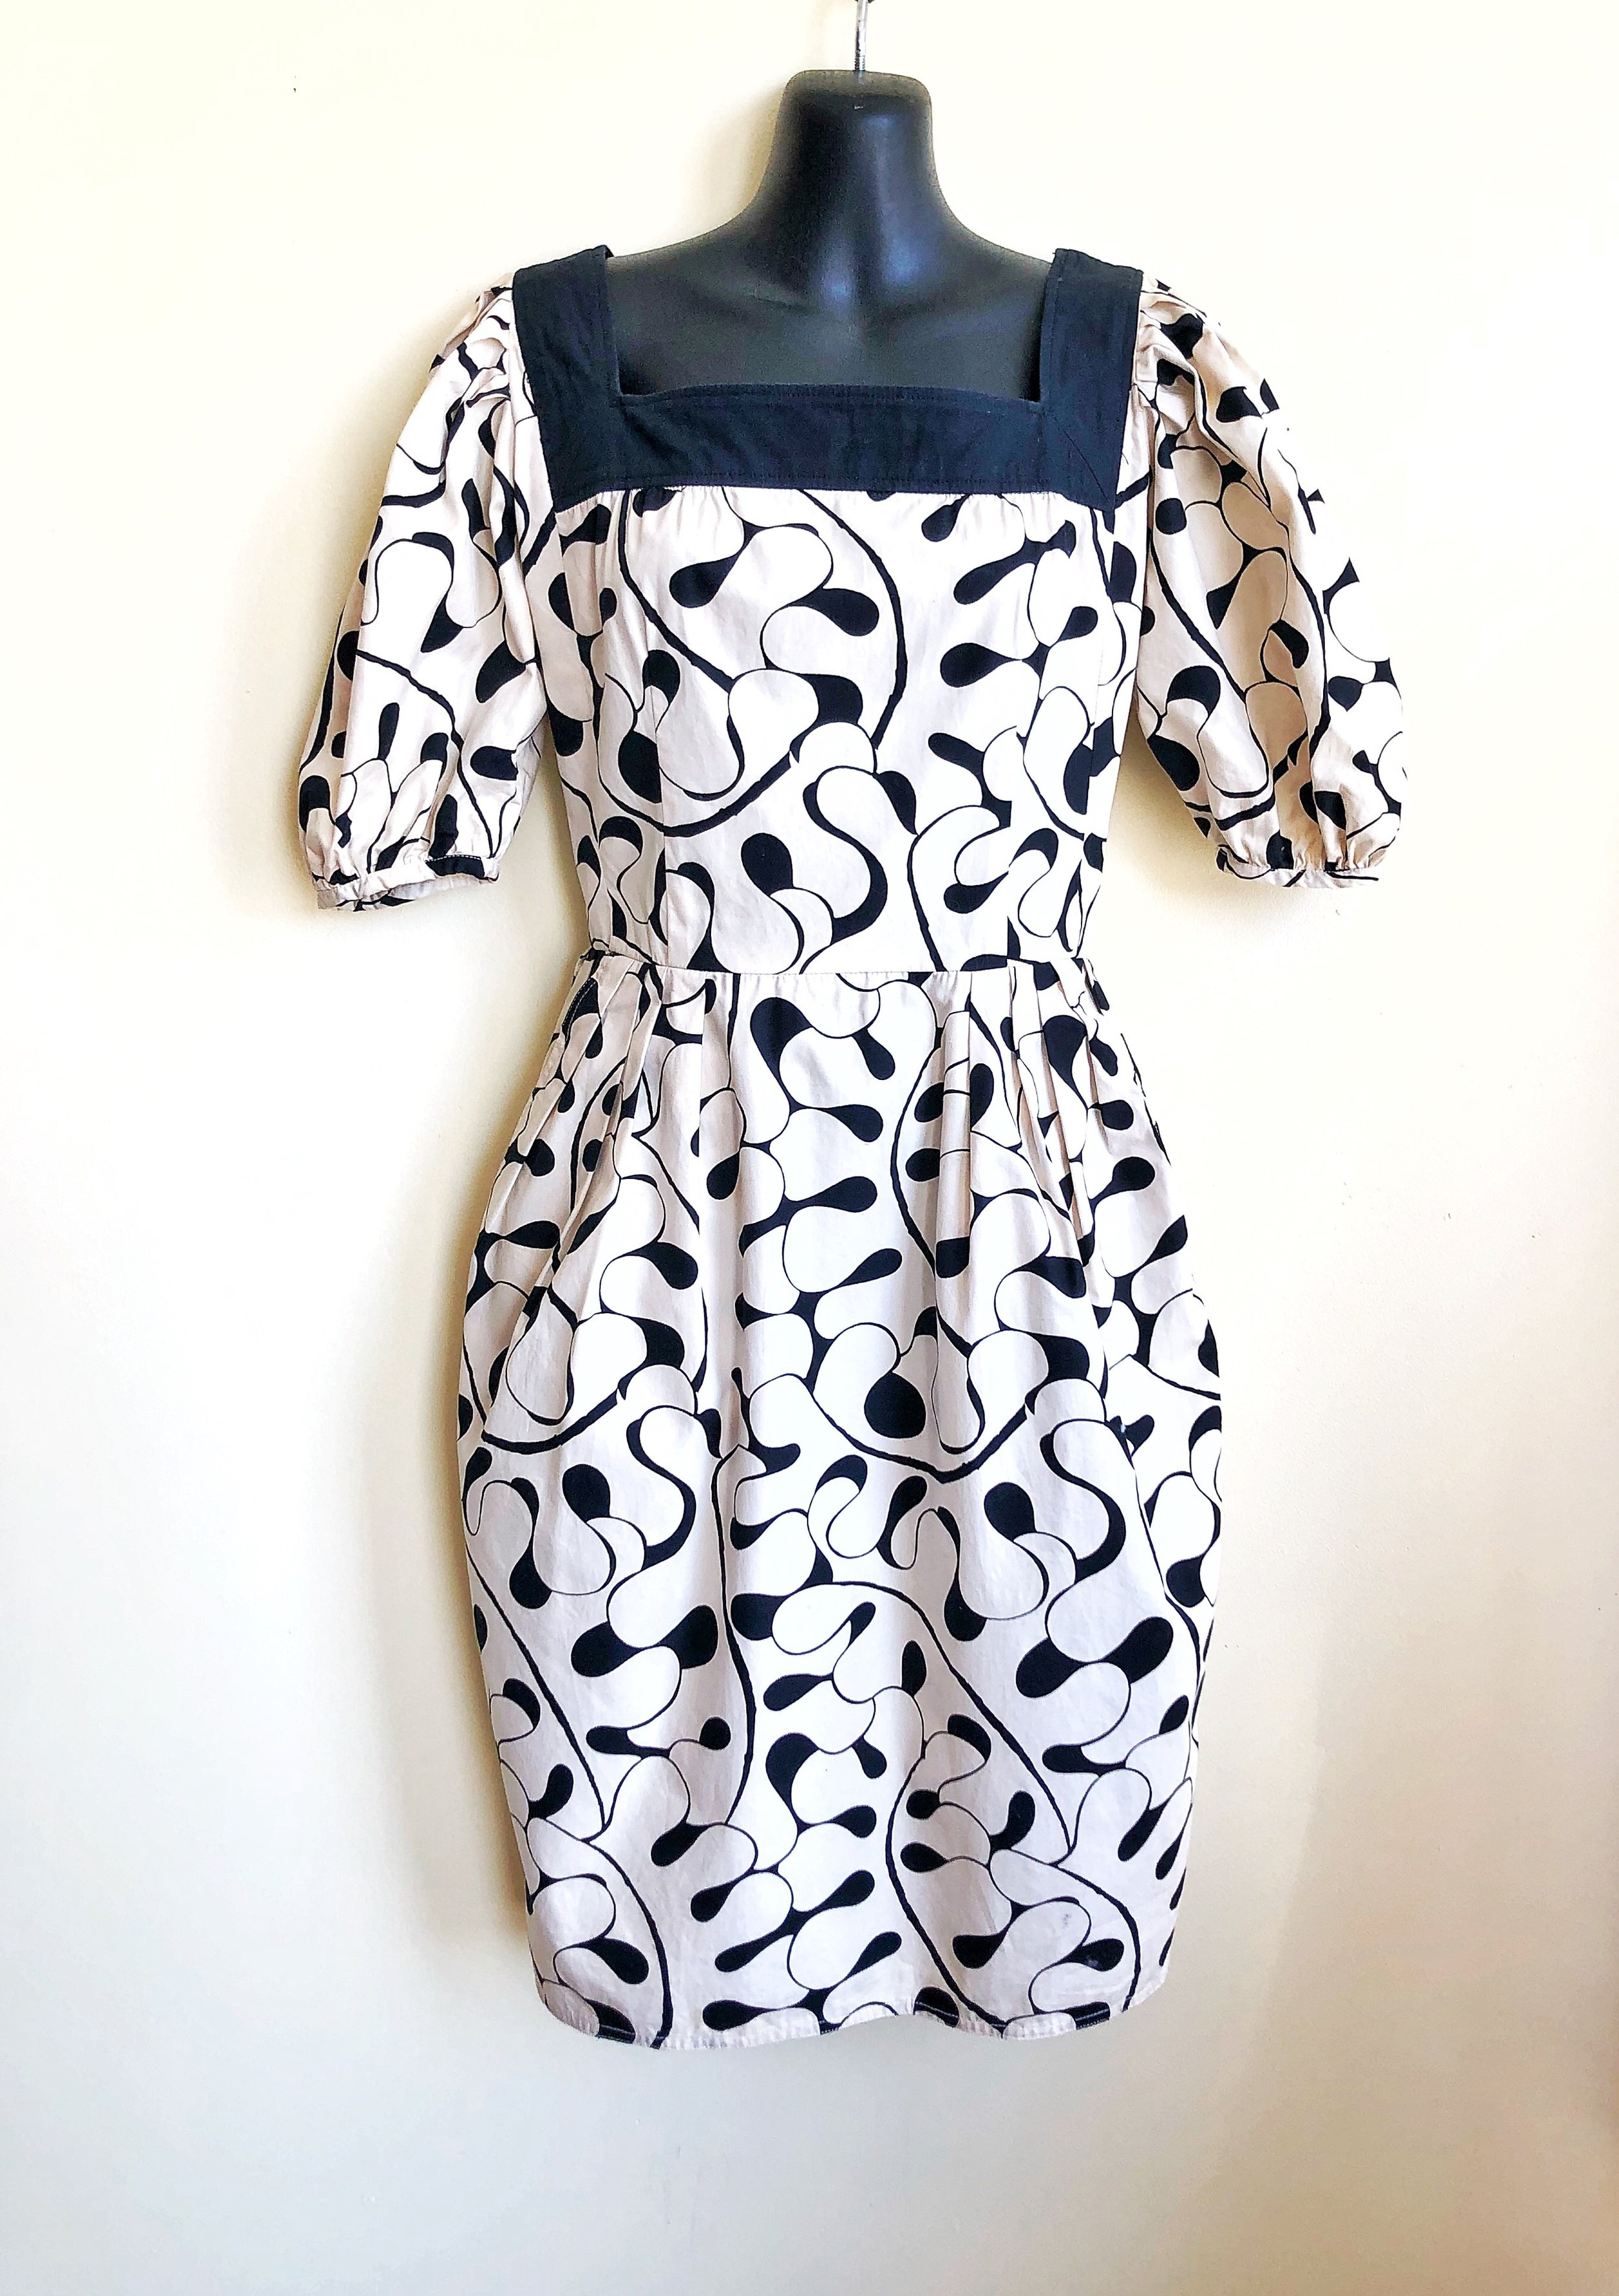 This dress is perky and fun. Emmanuel Ungaro holds an esteemed place in Italian fashion, especially Vintage. The cotton and stitching are superb so you'll feel like a million!